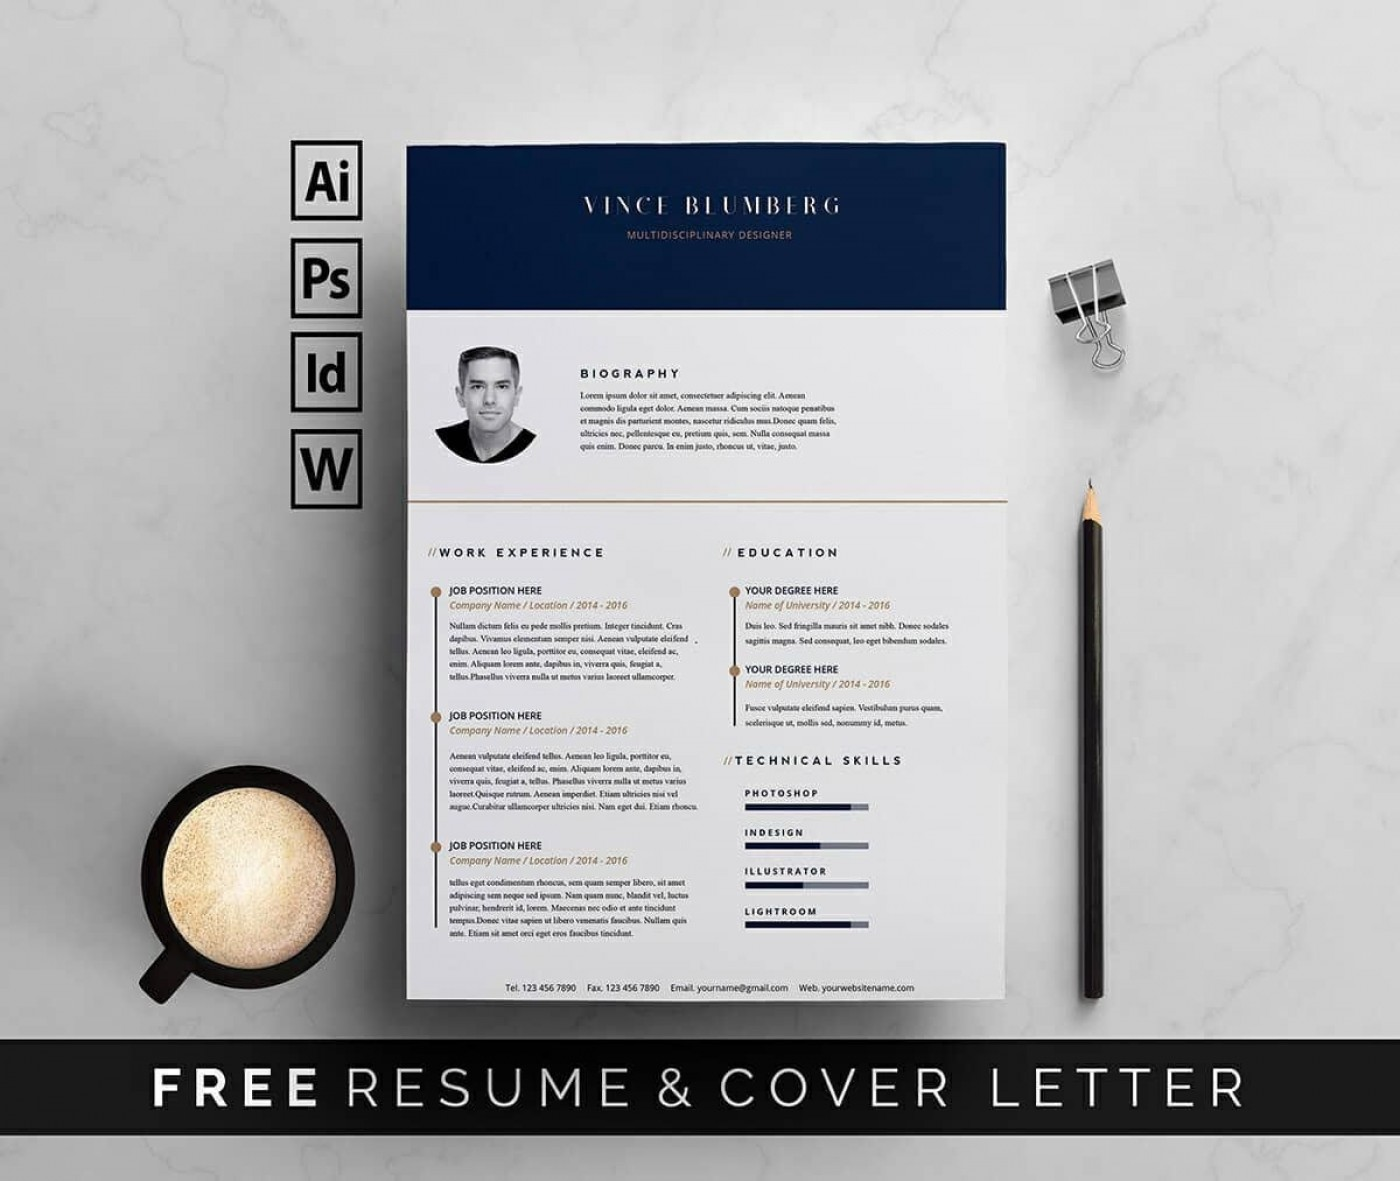 009 Phenomenal Download Free Resume Template Word 2018 High Def 1400